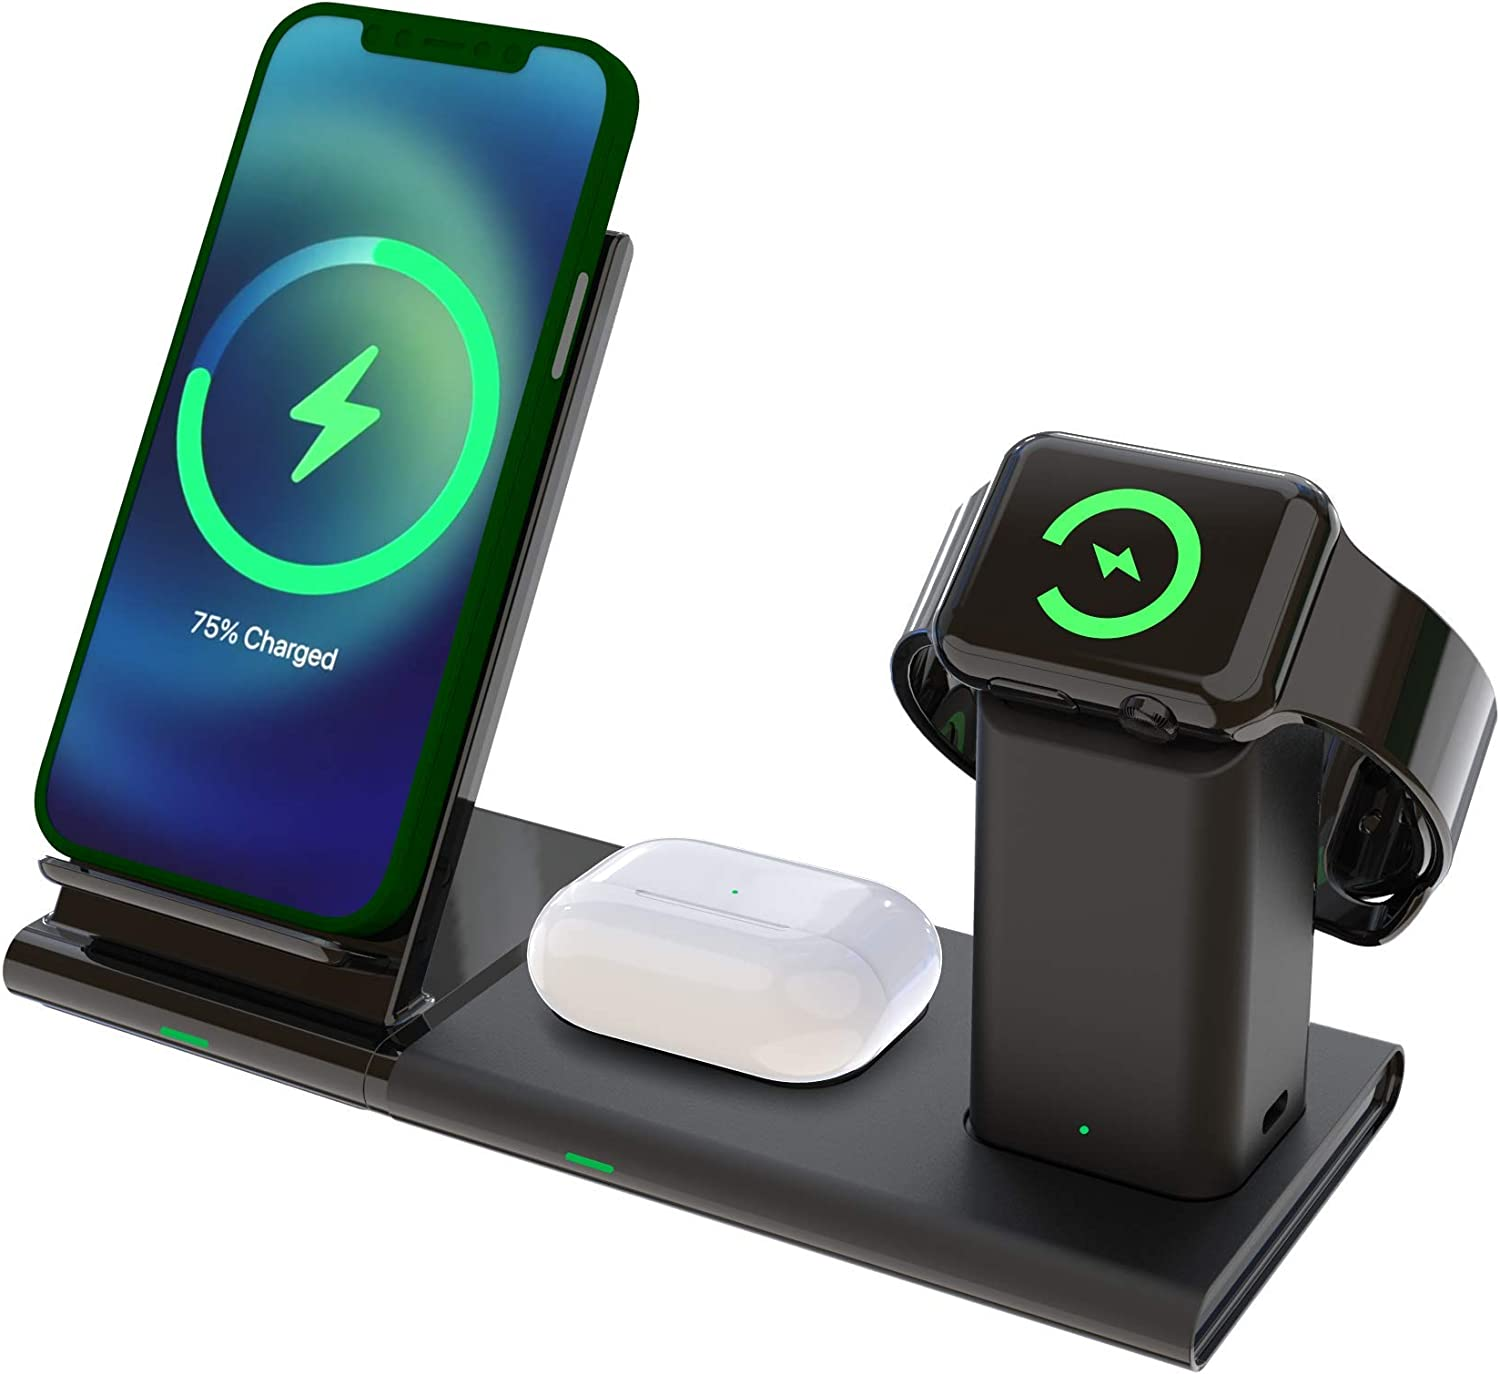 Wireless Charger, Mibao 3 in 1 Wireless Charging Station for Apple Watch, AirPods Pro/2, Detachable Wireless Charging Stand for iPhone 11 Pro Max/X/XS/XR/8Plus(NO QC 3.0 Adapter and iWatch Charger)